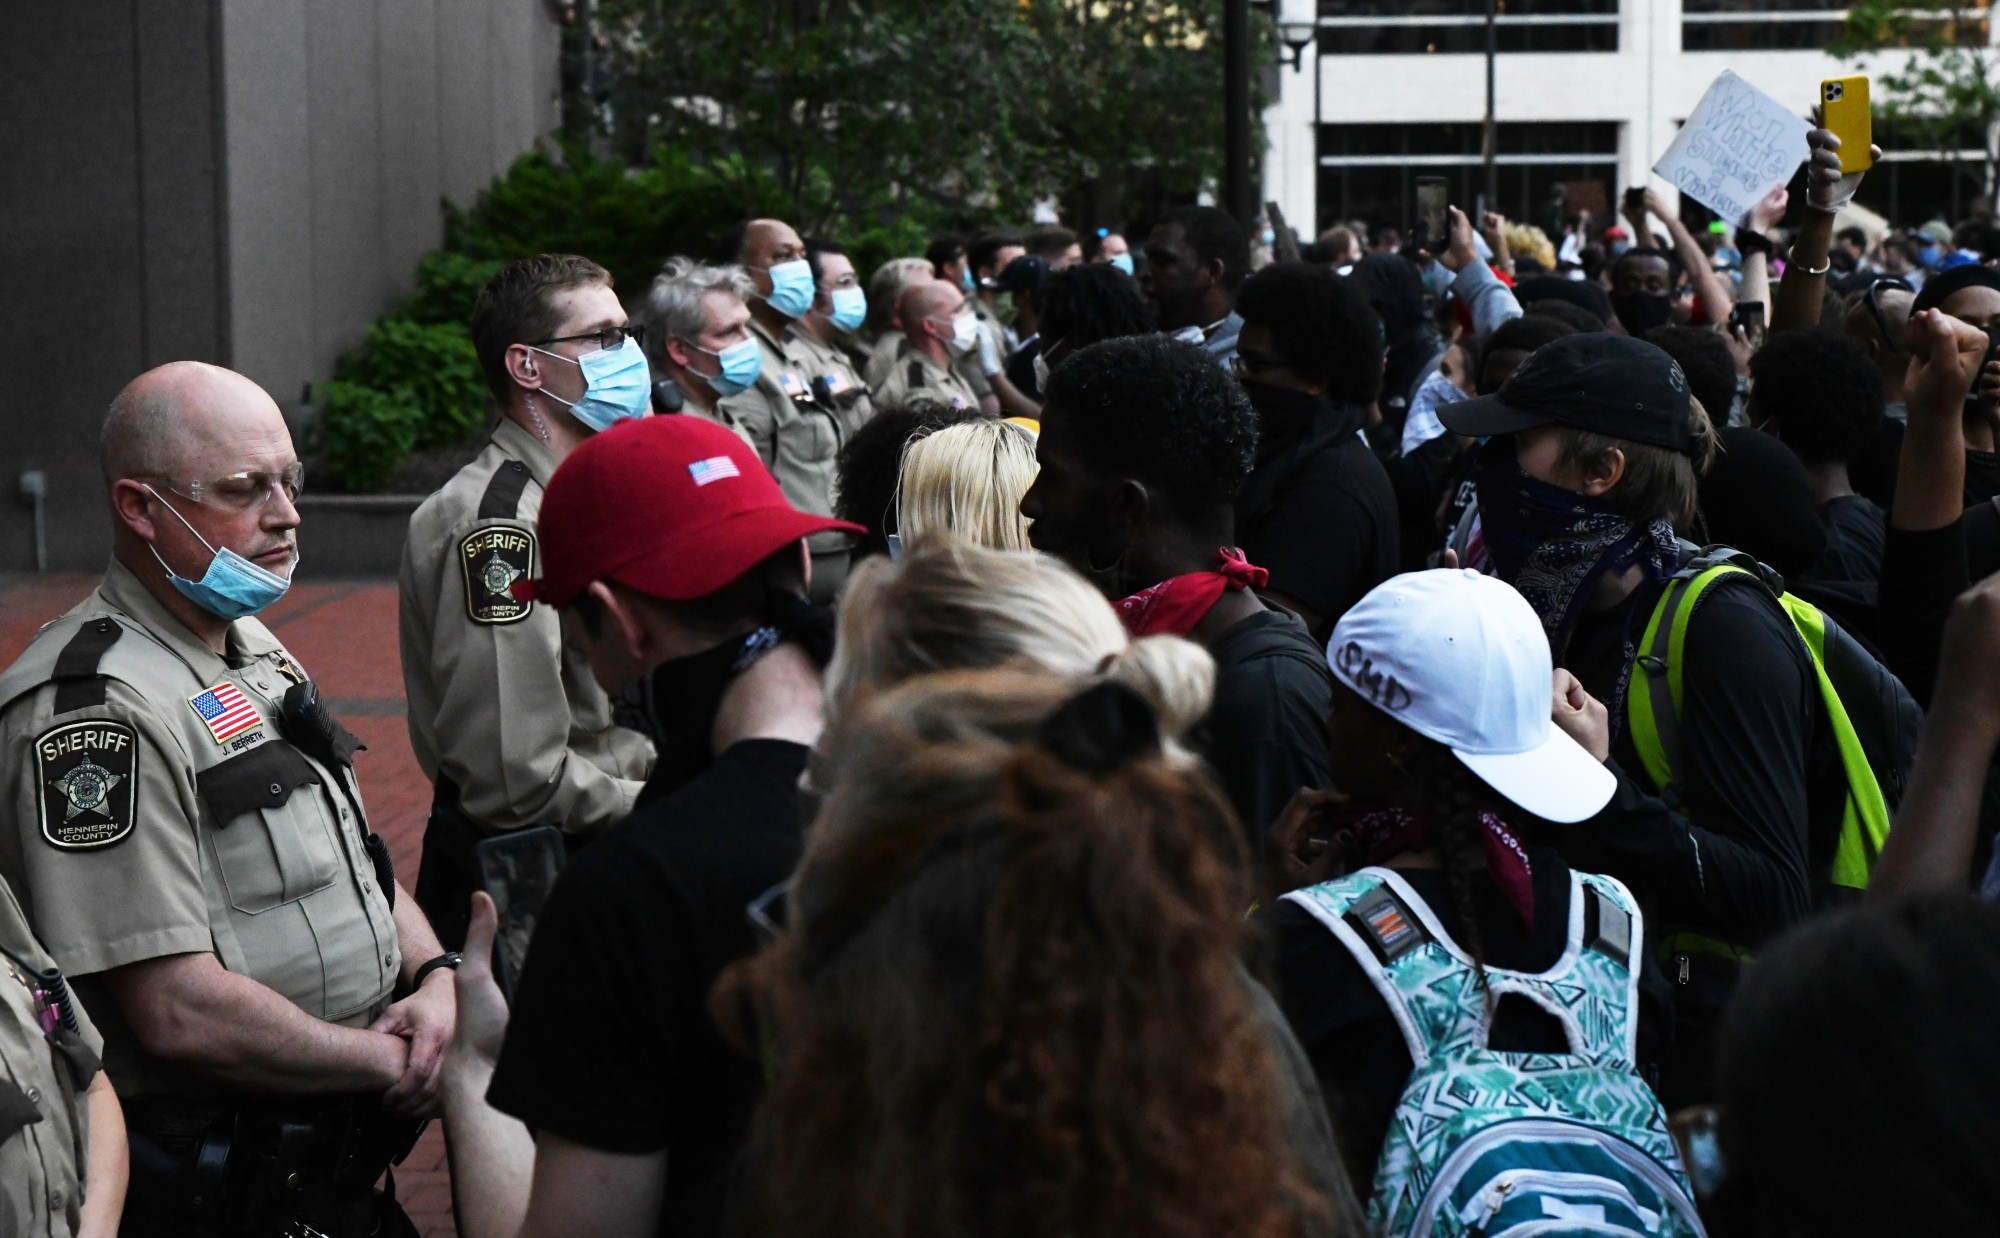 Hennepin County sheriffs face demonstrators in front of the Hennepin County Government Center in Minneapolis on Thursday, May 28.